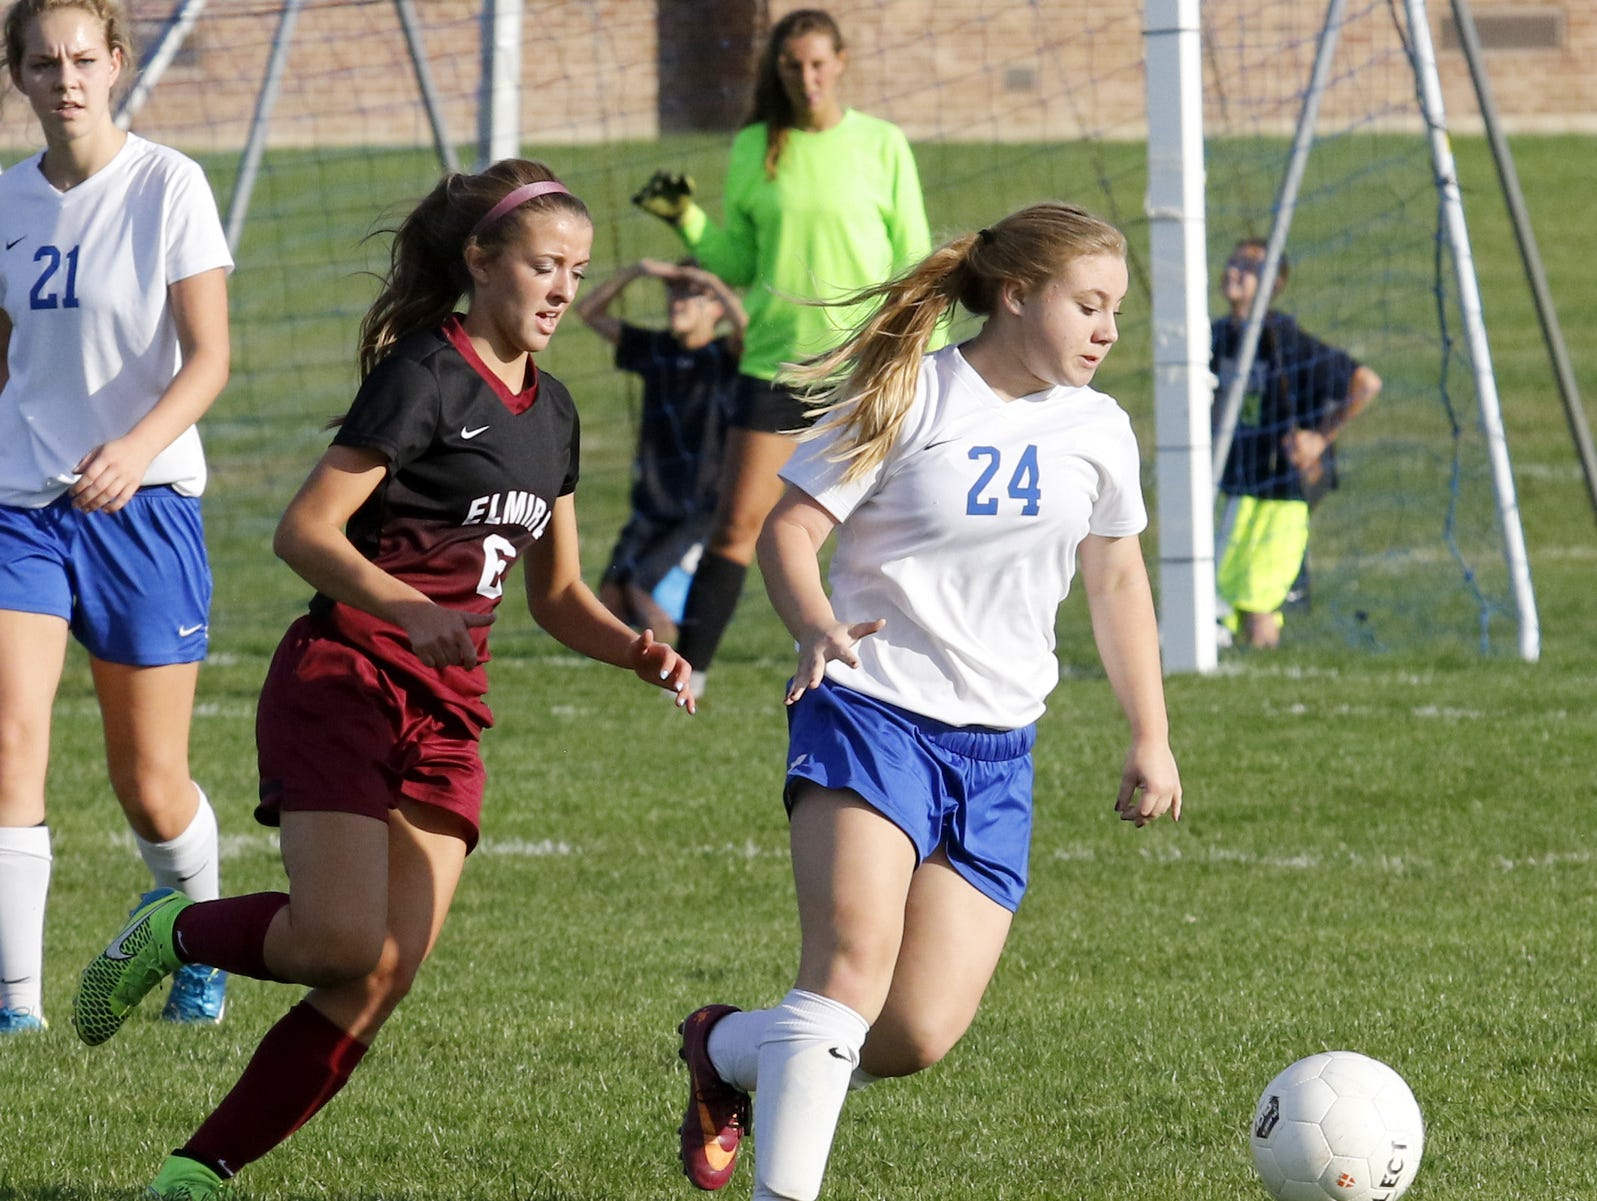 Jade Munson of Horseheads dribbles the ball in front of Elmira's Abby Seymour during a 1-1 girls soccer tie Thursday at Horseheads.